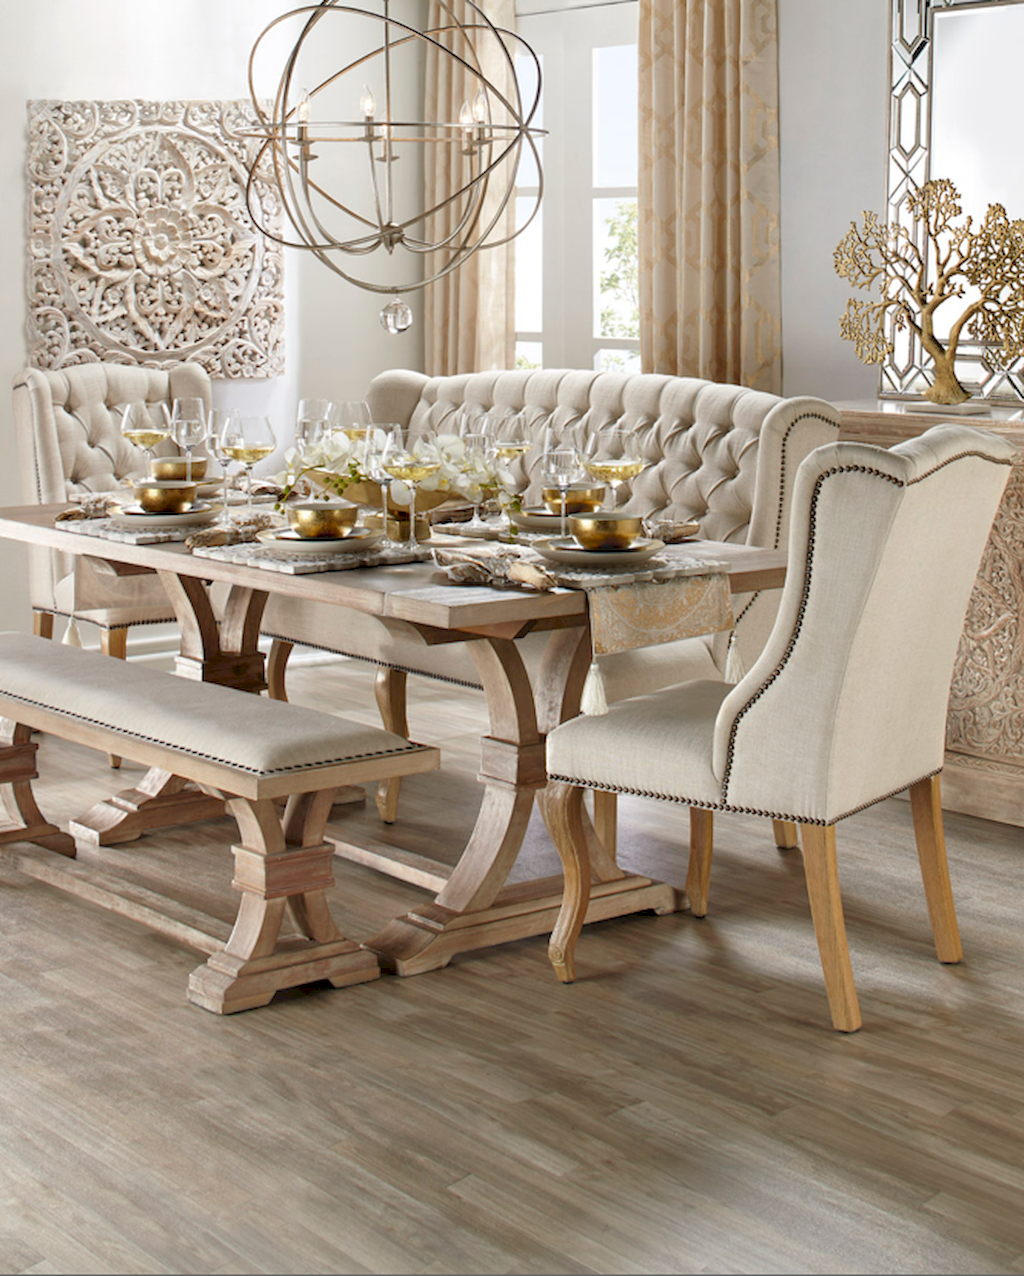 Spaciroom Com Nbspspaciroom Resources And Information French Country Dining Room Decor Country Dining Rooms French Country Dining Room